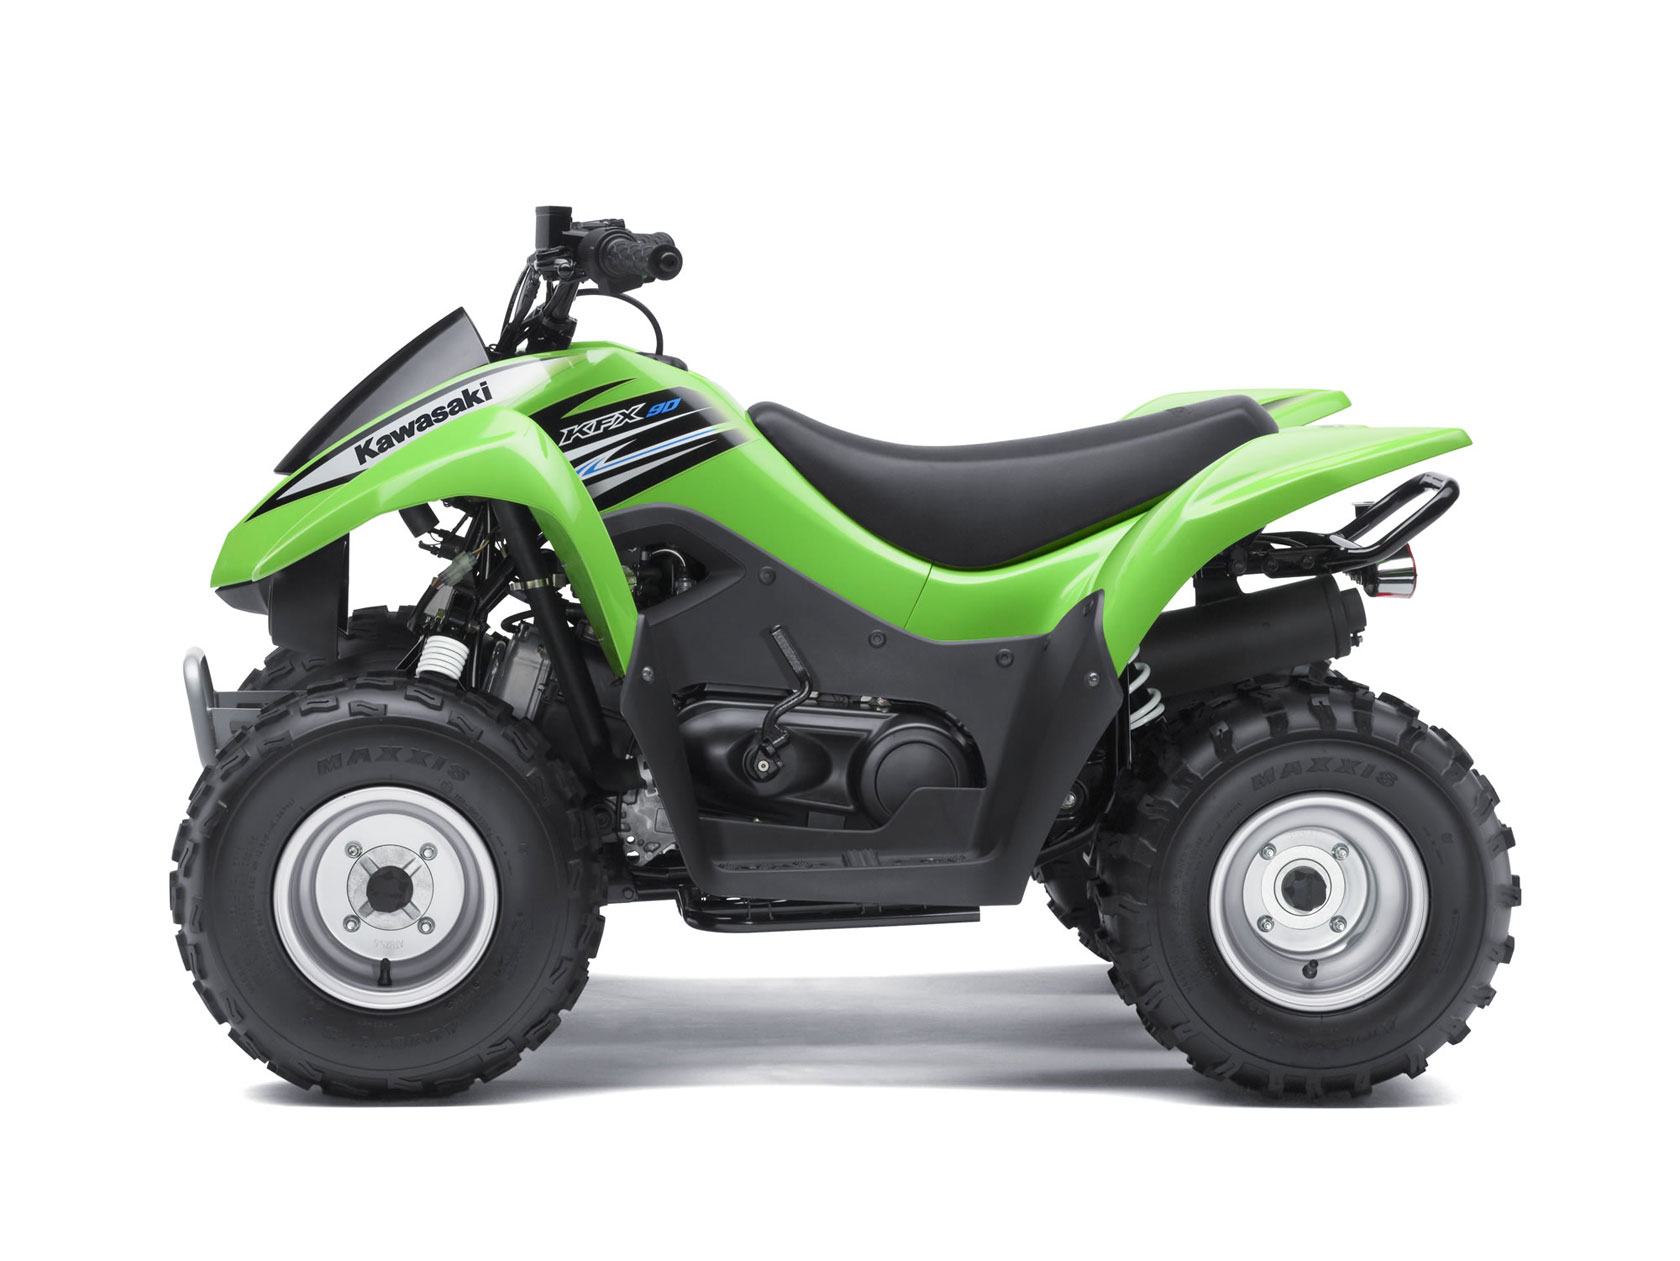 Kfx 80 Wiring Diagram Schematics Kawasaki Quad Bike 90 Will Be A Thing U2022 Four Wheeler